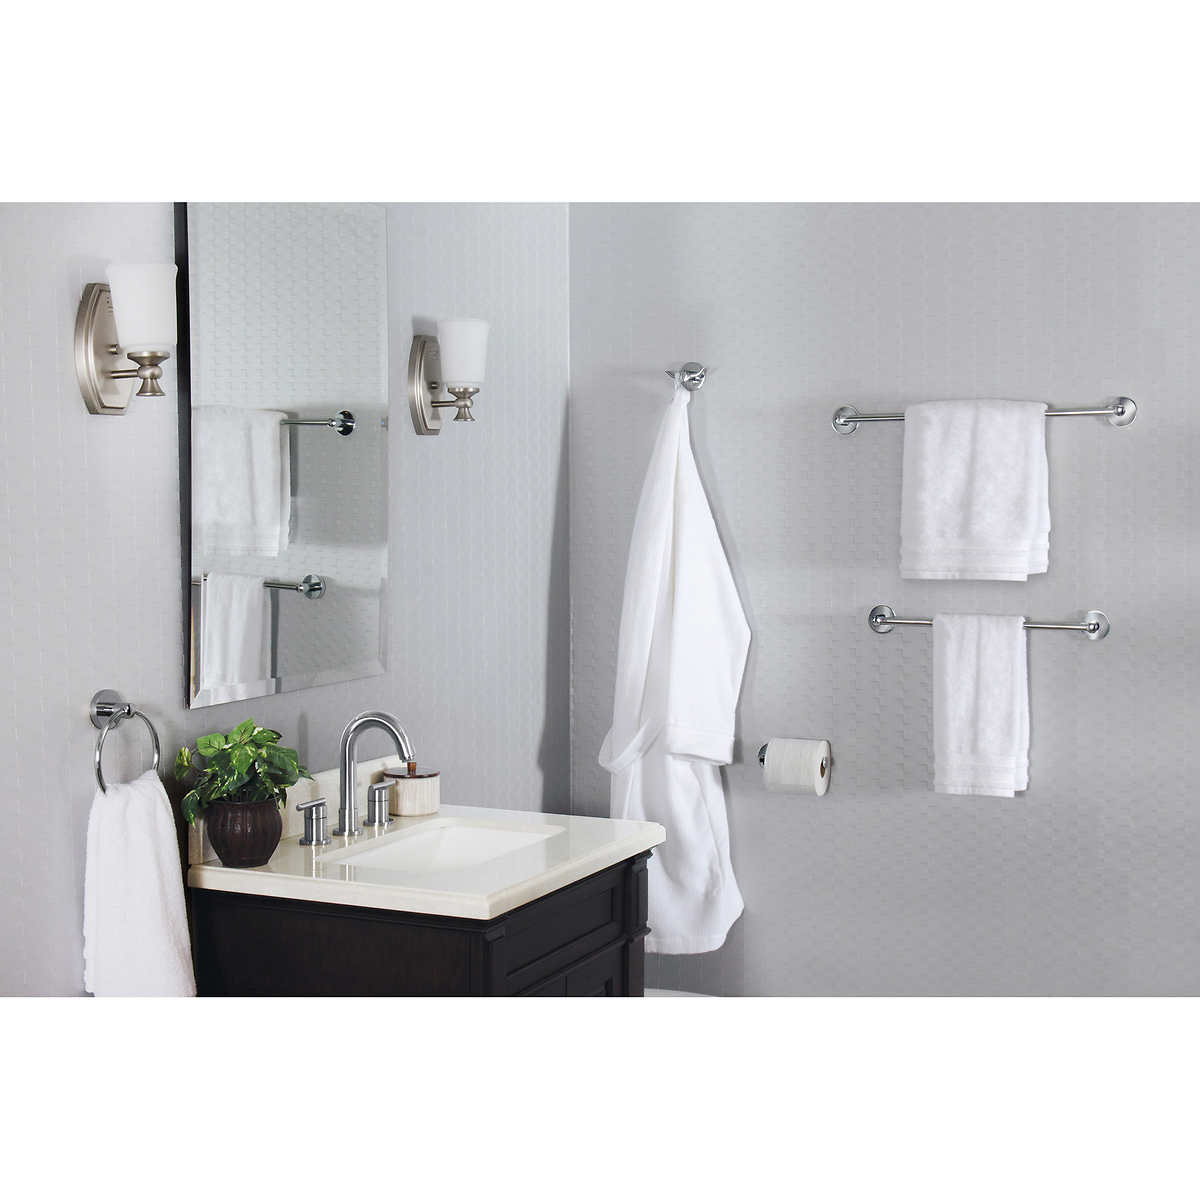 Bathroom Accessories Images bathroom accessories | costco